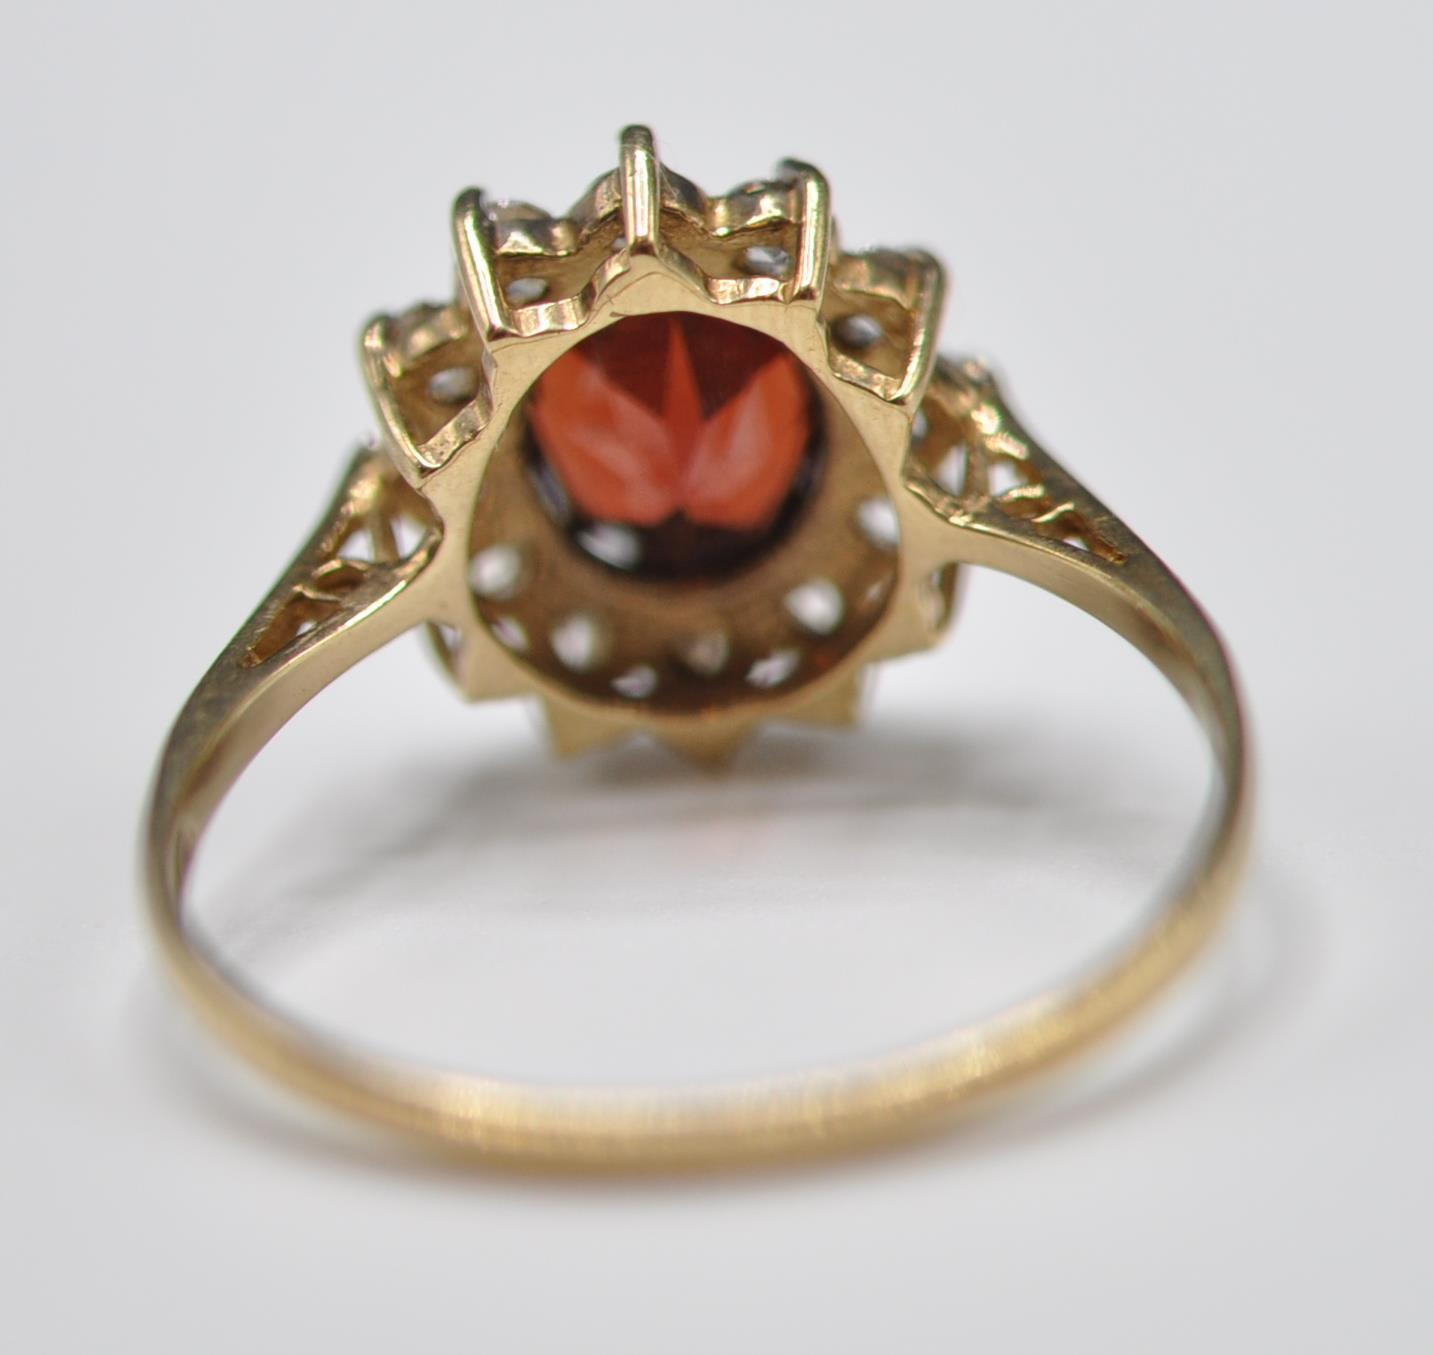 9CT GOLD RED AND WHITE STONE CLUSTER RING - Image 5 of 9